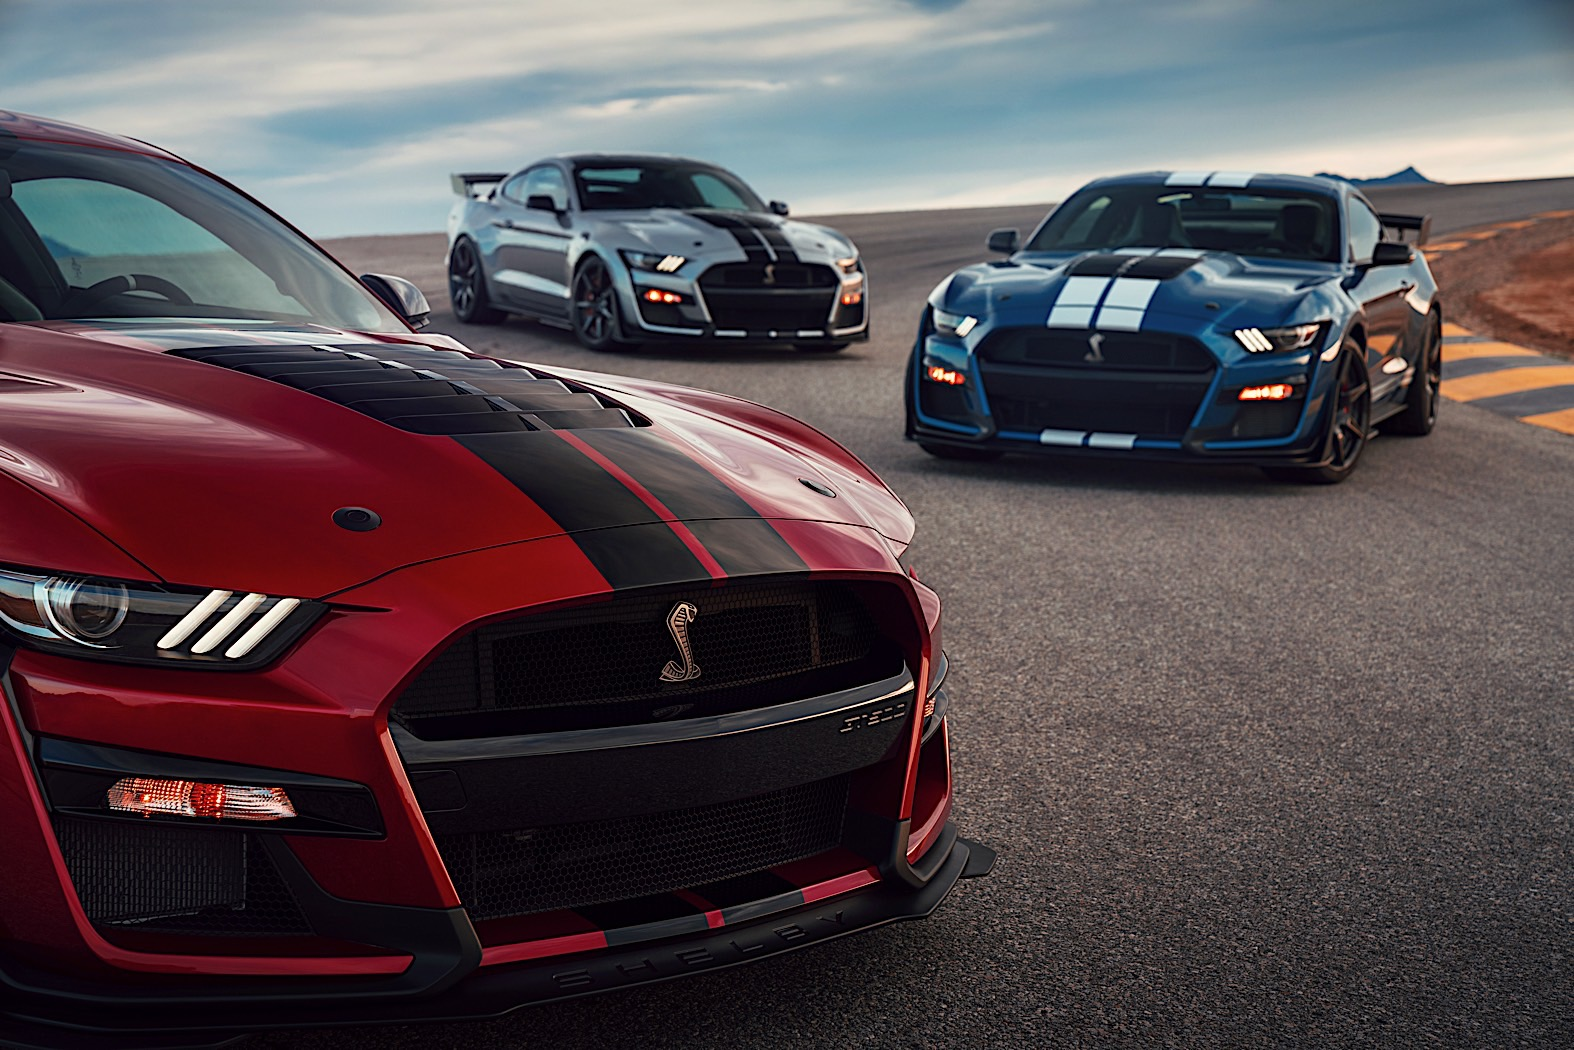 2020 Mustang Shelby GT500: Hear the Mighty Roar of the Most Powerful